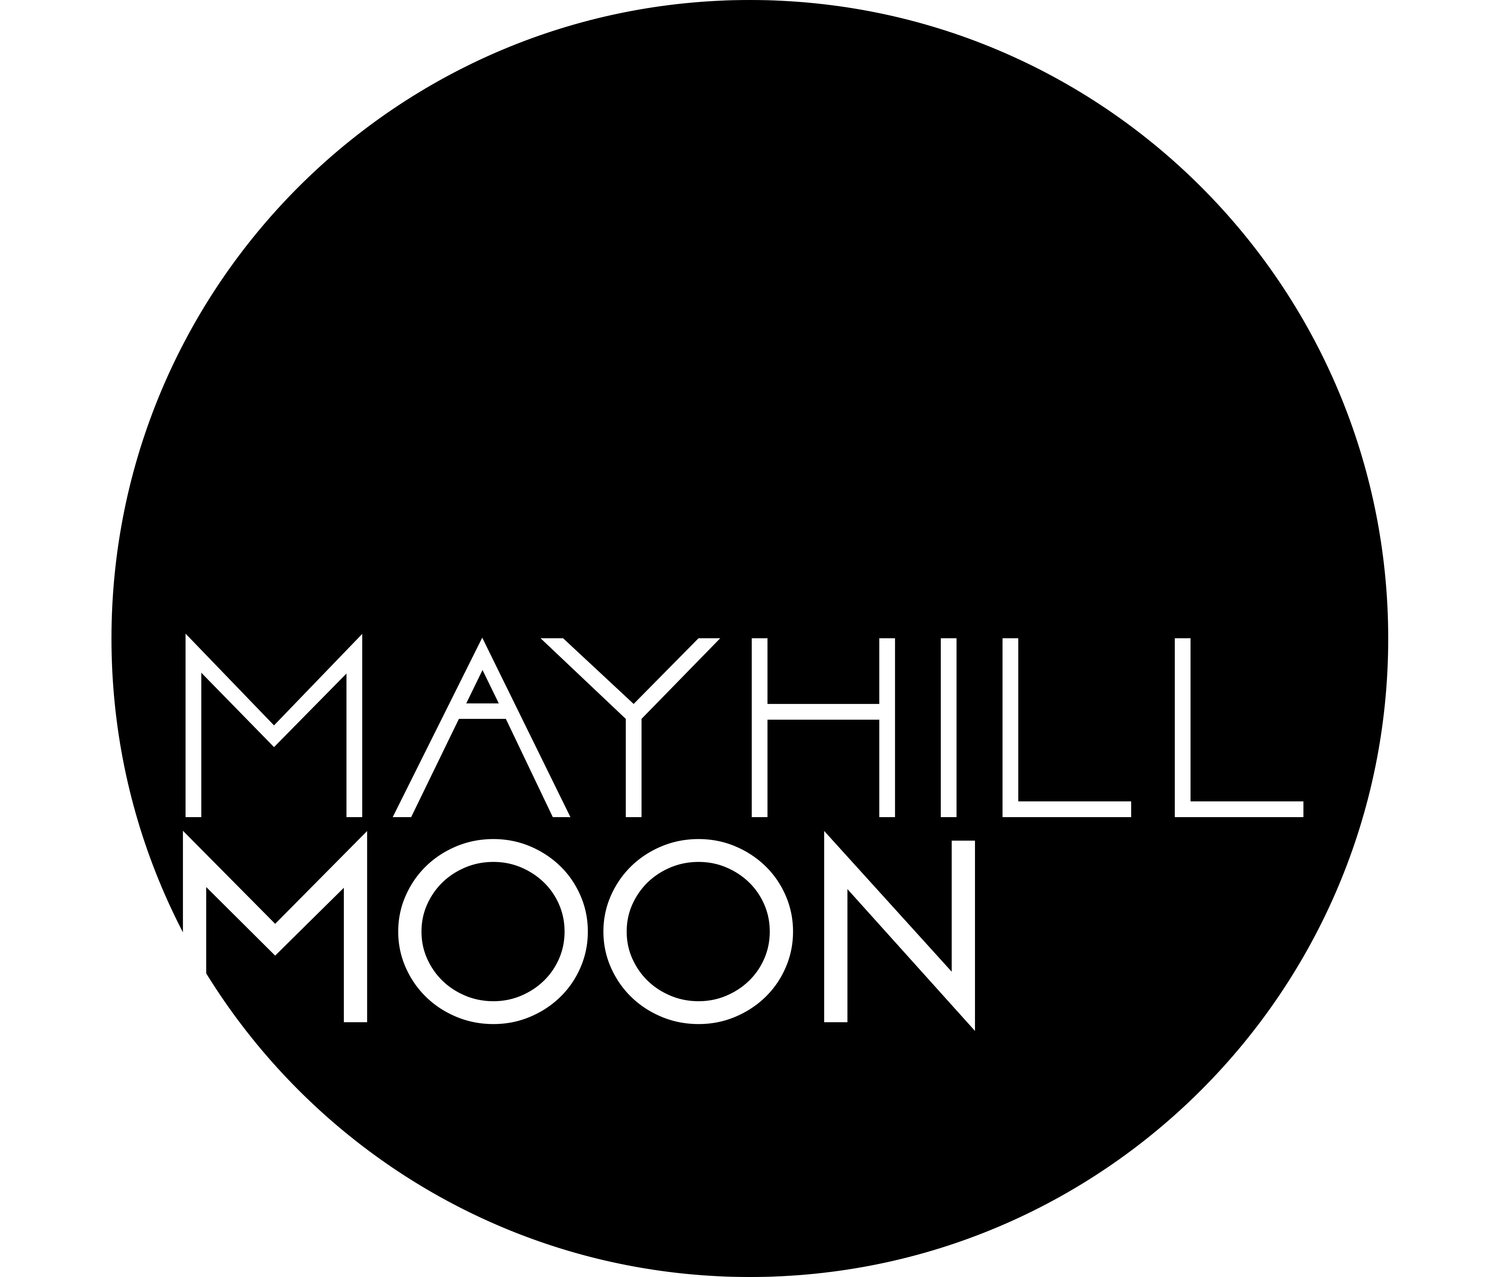 Mayhill Moon